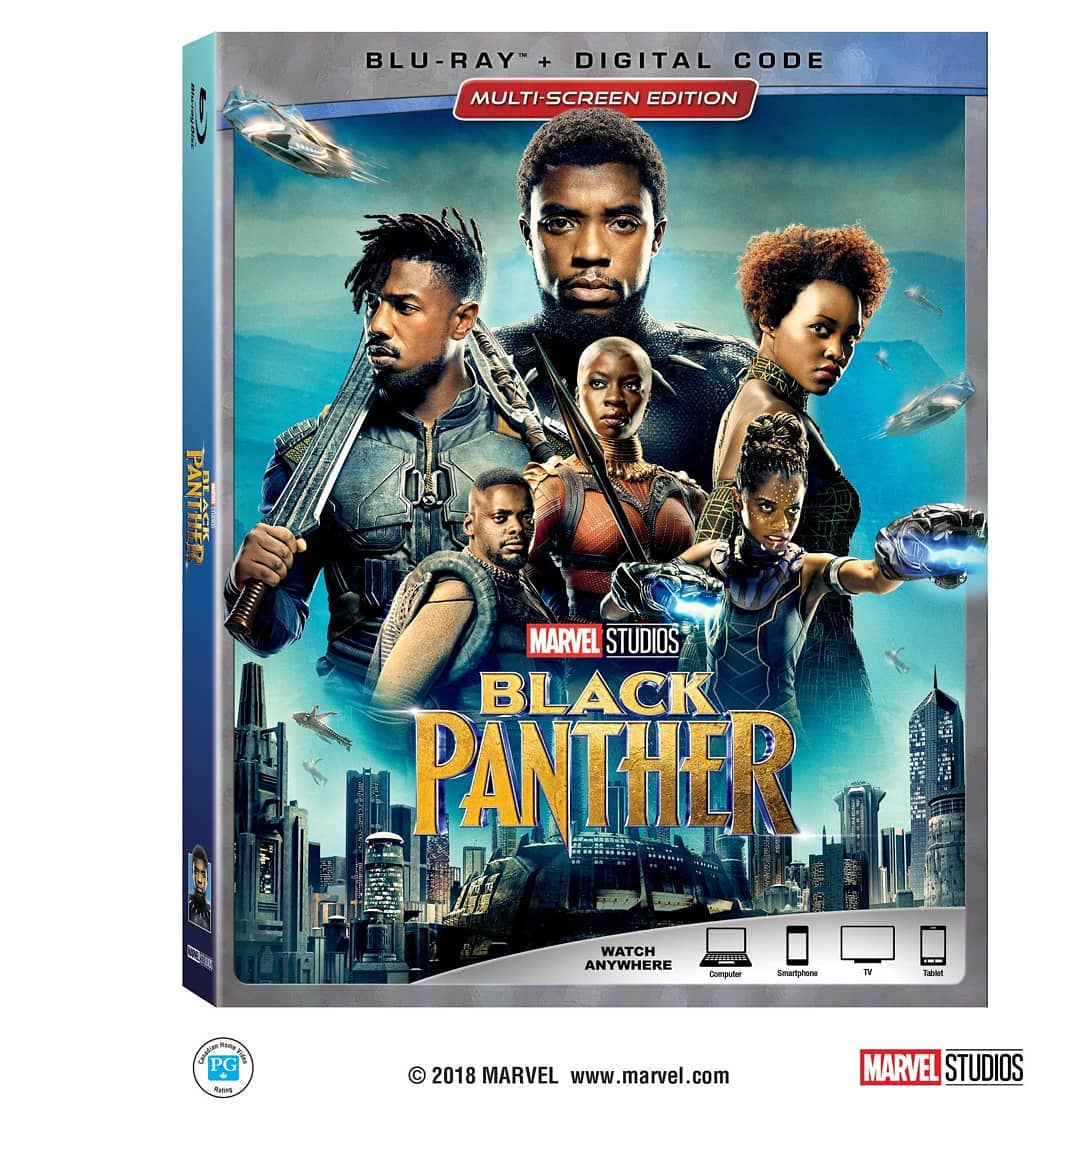 Marvel Studios Black Panther Blu-ray DVD